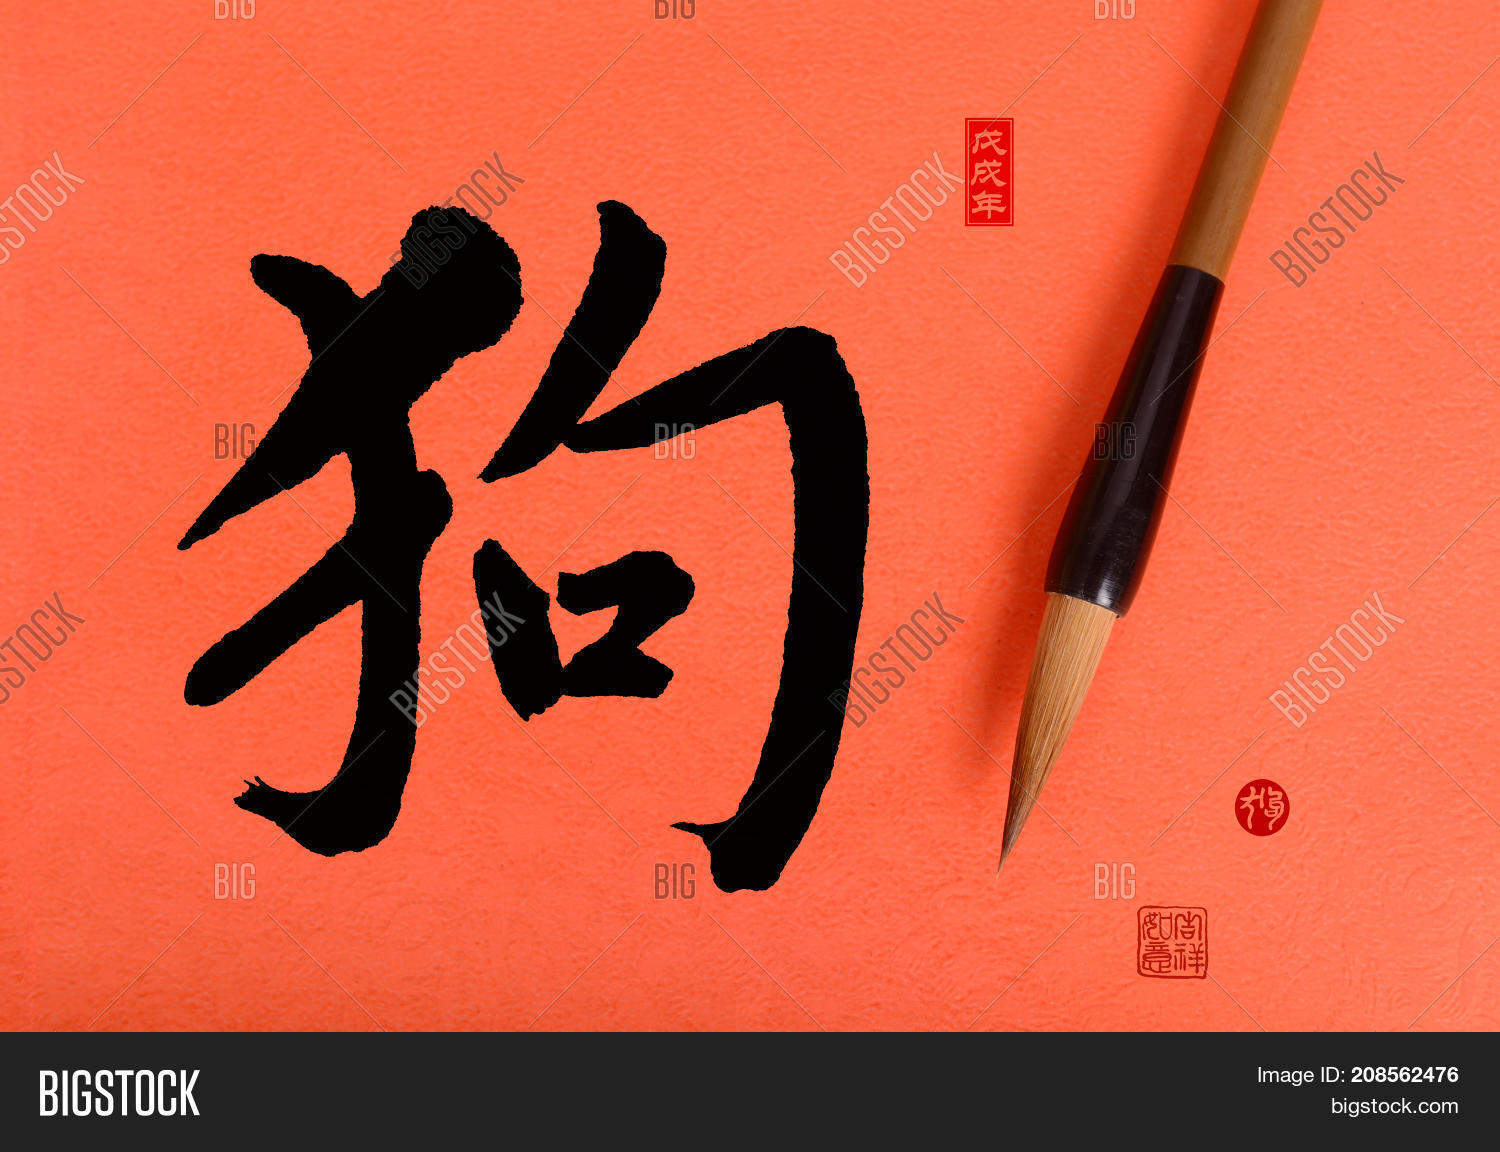 Chinese Traditional Image Photo Free Trial Bigstock